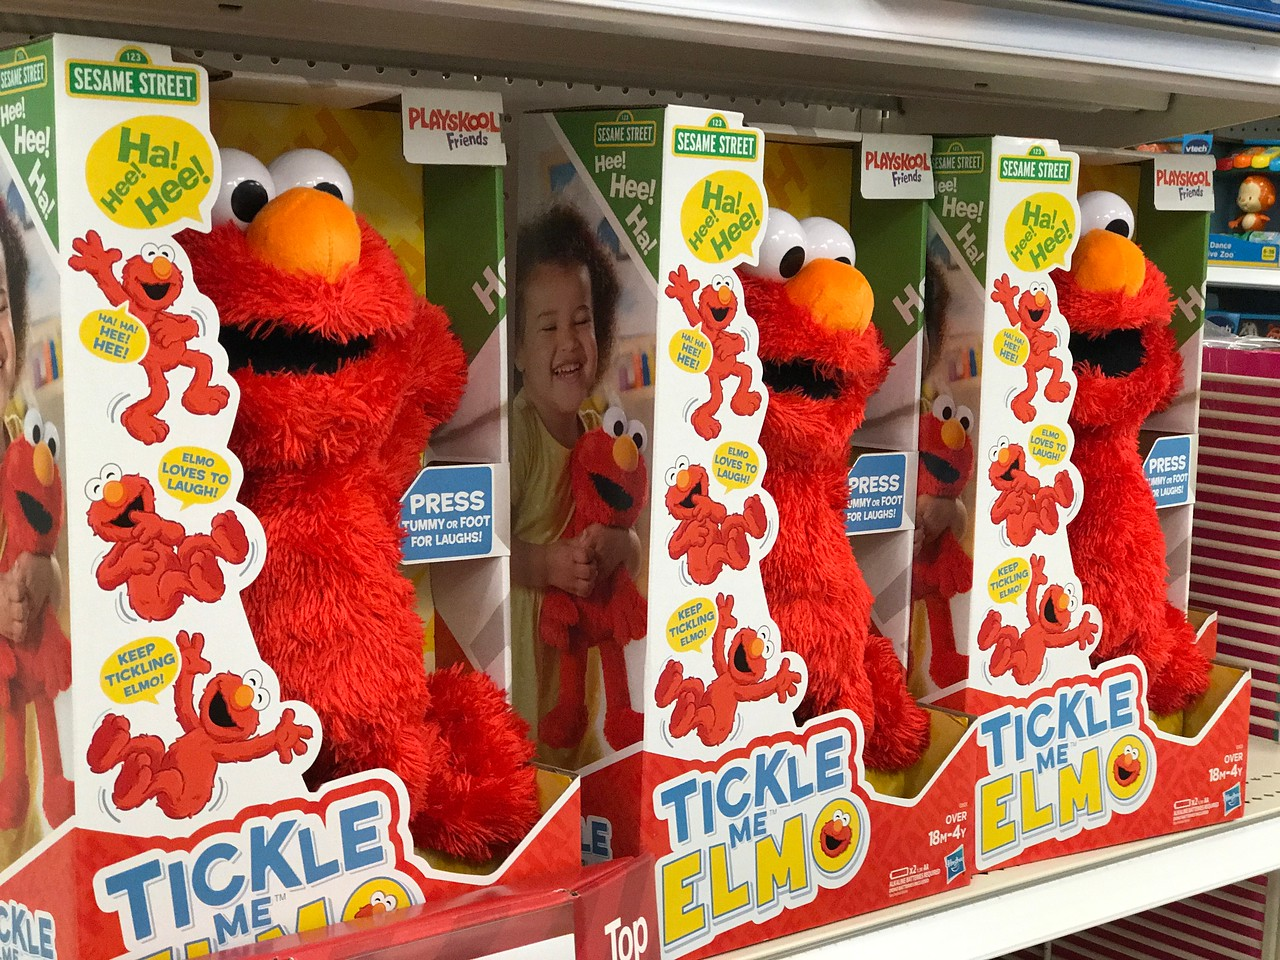 best target black friday 2018 deals – Tickle Me Elmo